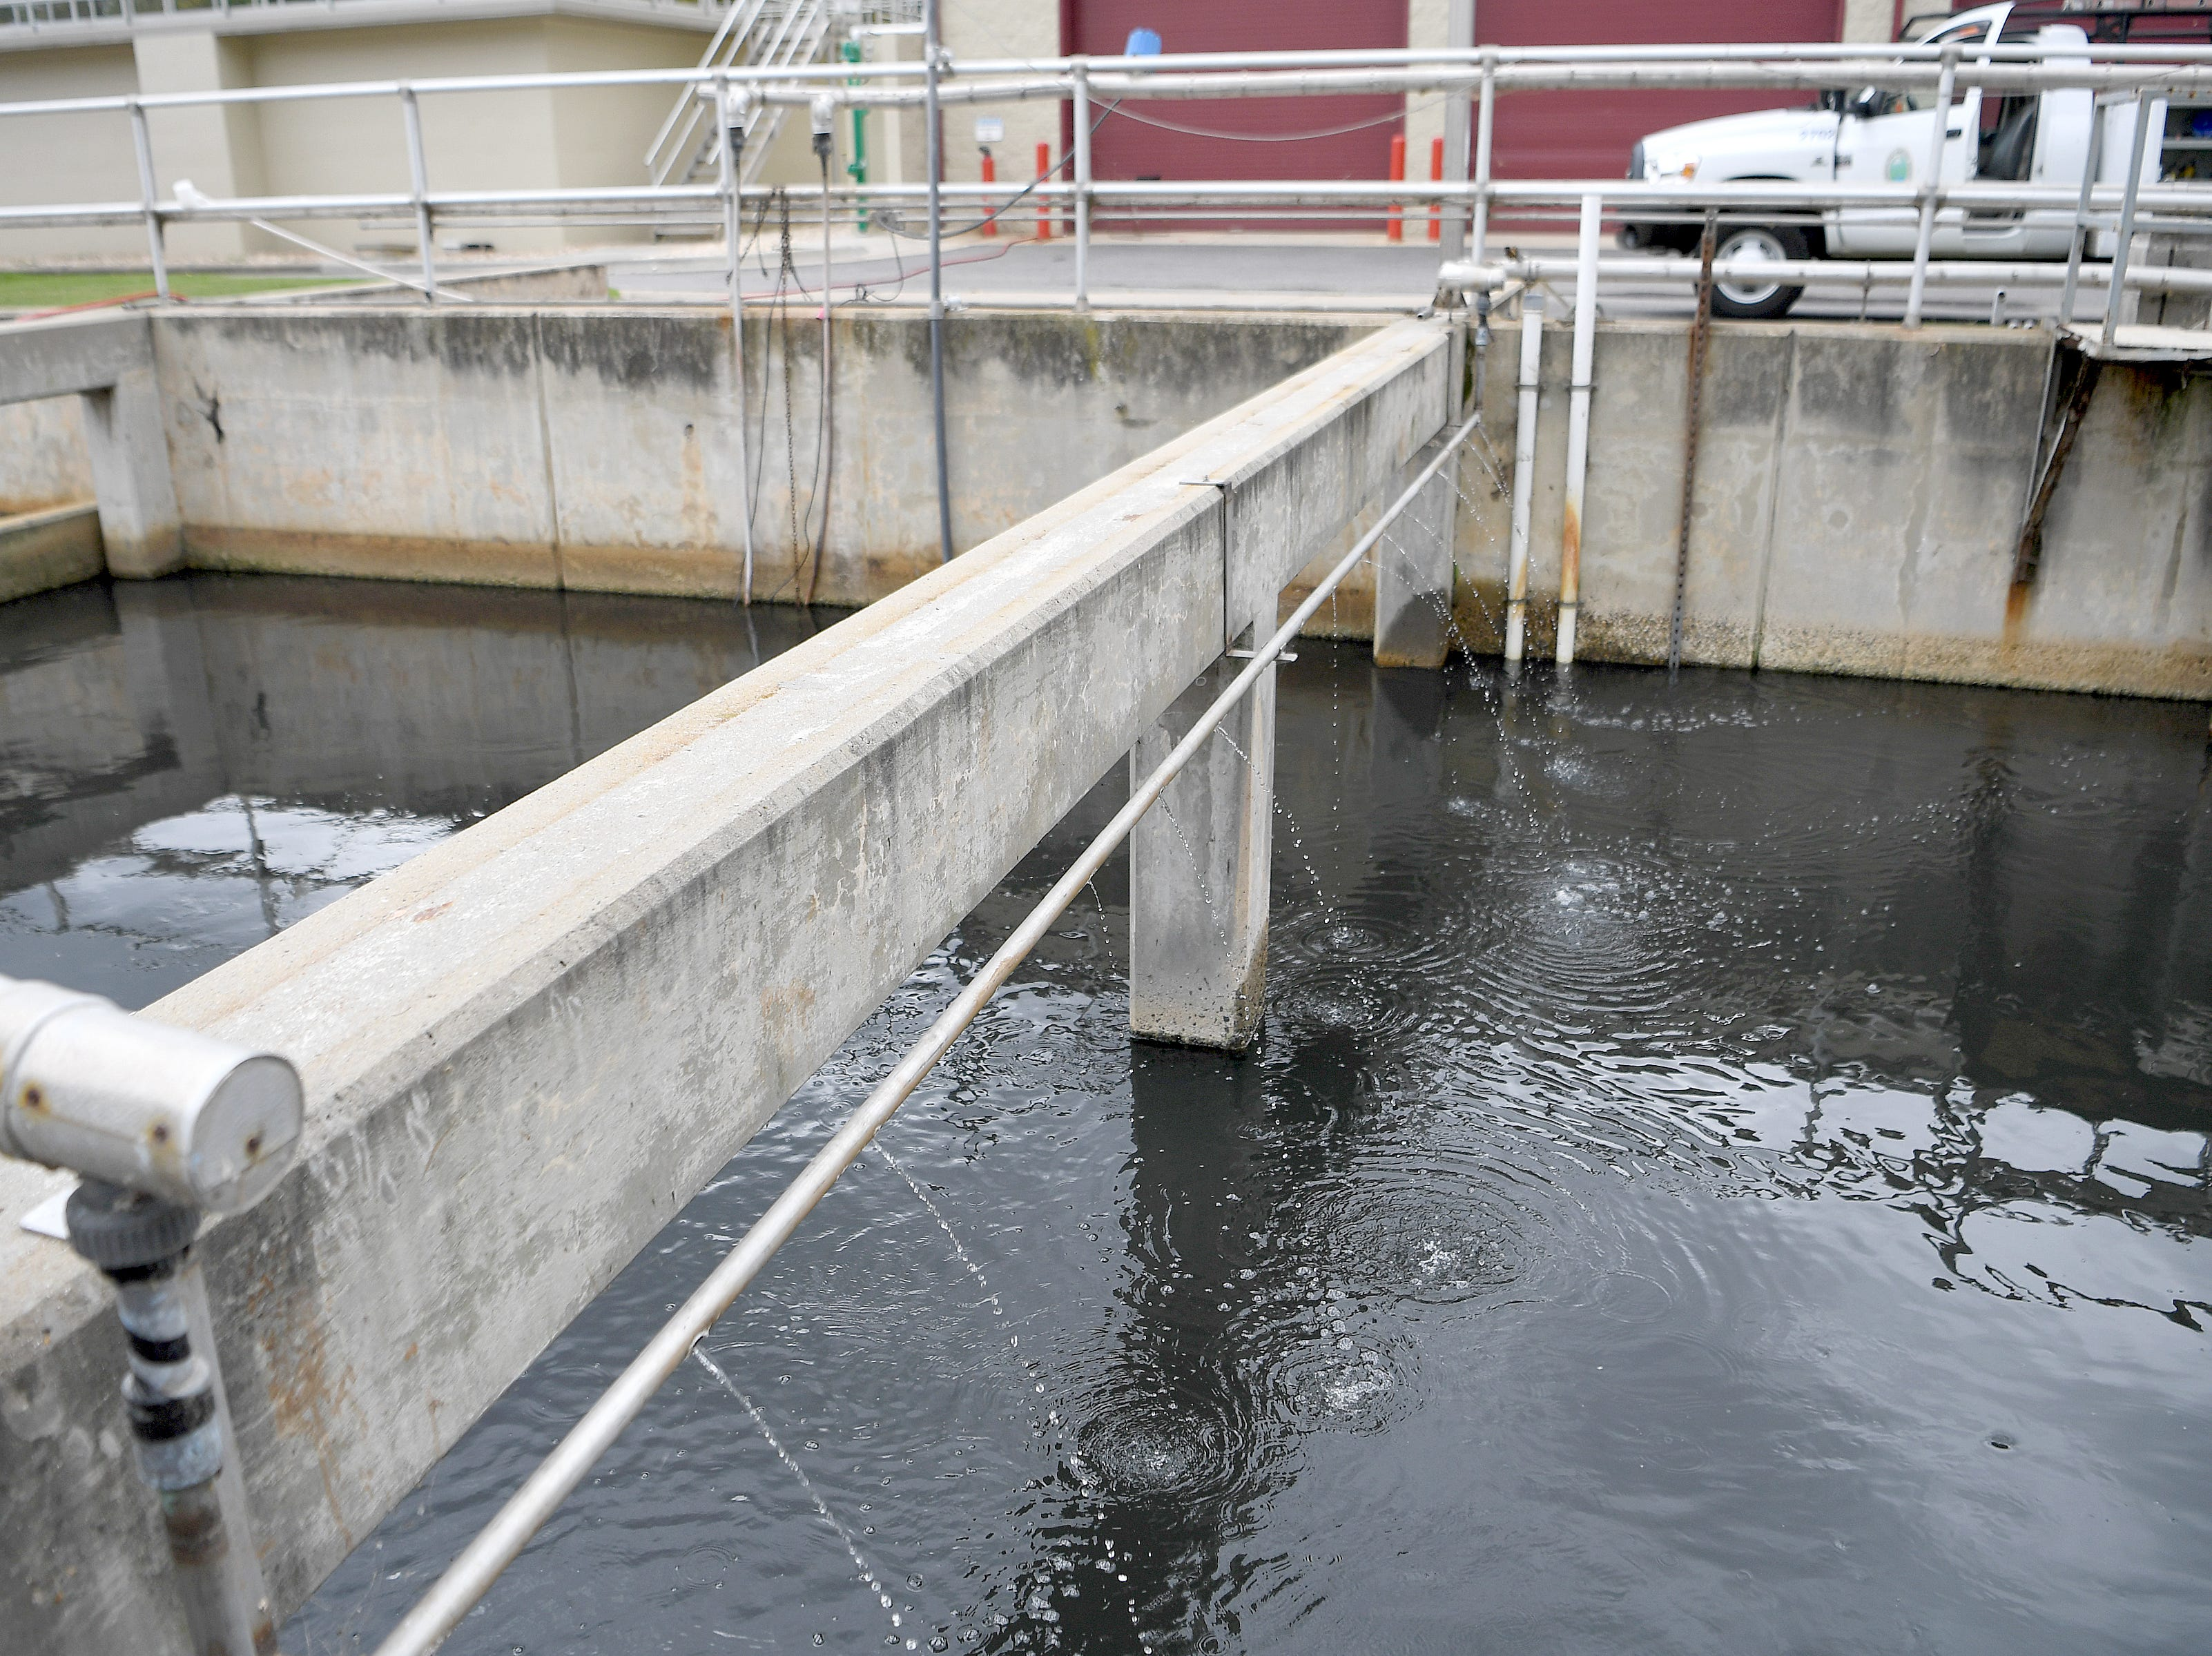 Sodium bisulfite is added to the water to reduce residual chlorine during treatment at the Metropolitan Sewerage District's water reclamation facility.